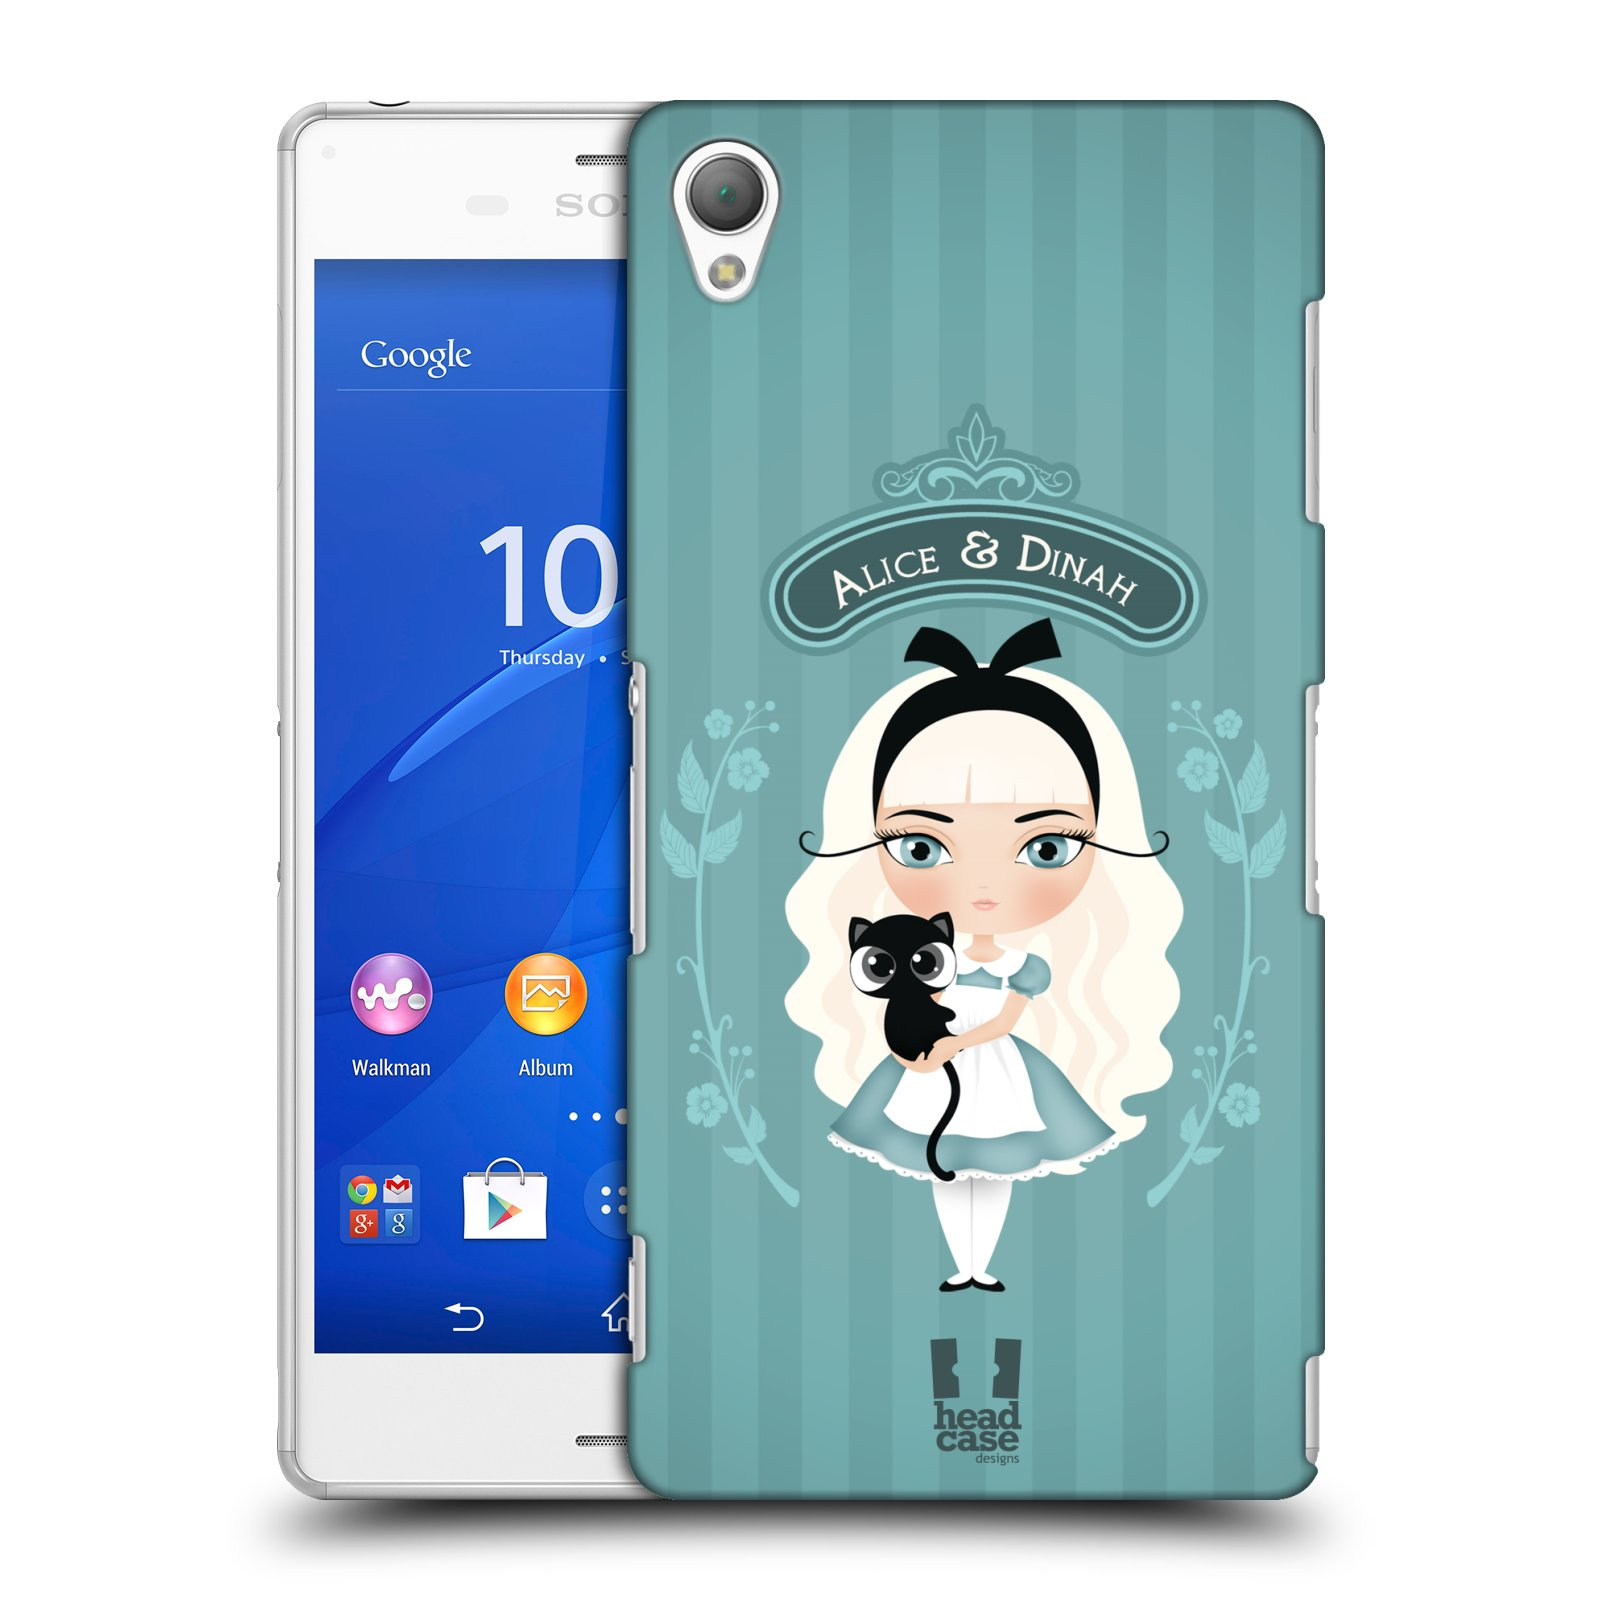 HEAD CASE DESIGNS ALICE IN WONDERLAND CASE COVER FOR SONY XPERIA Z3